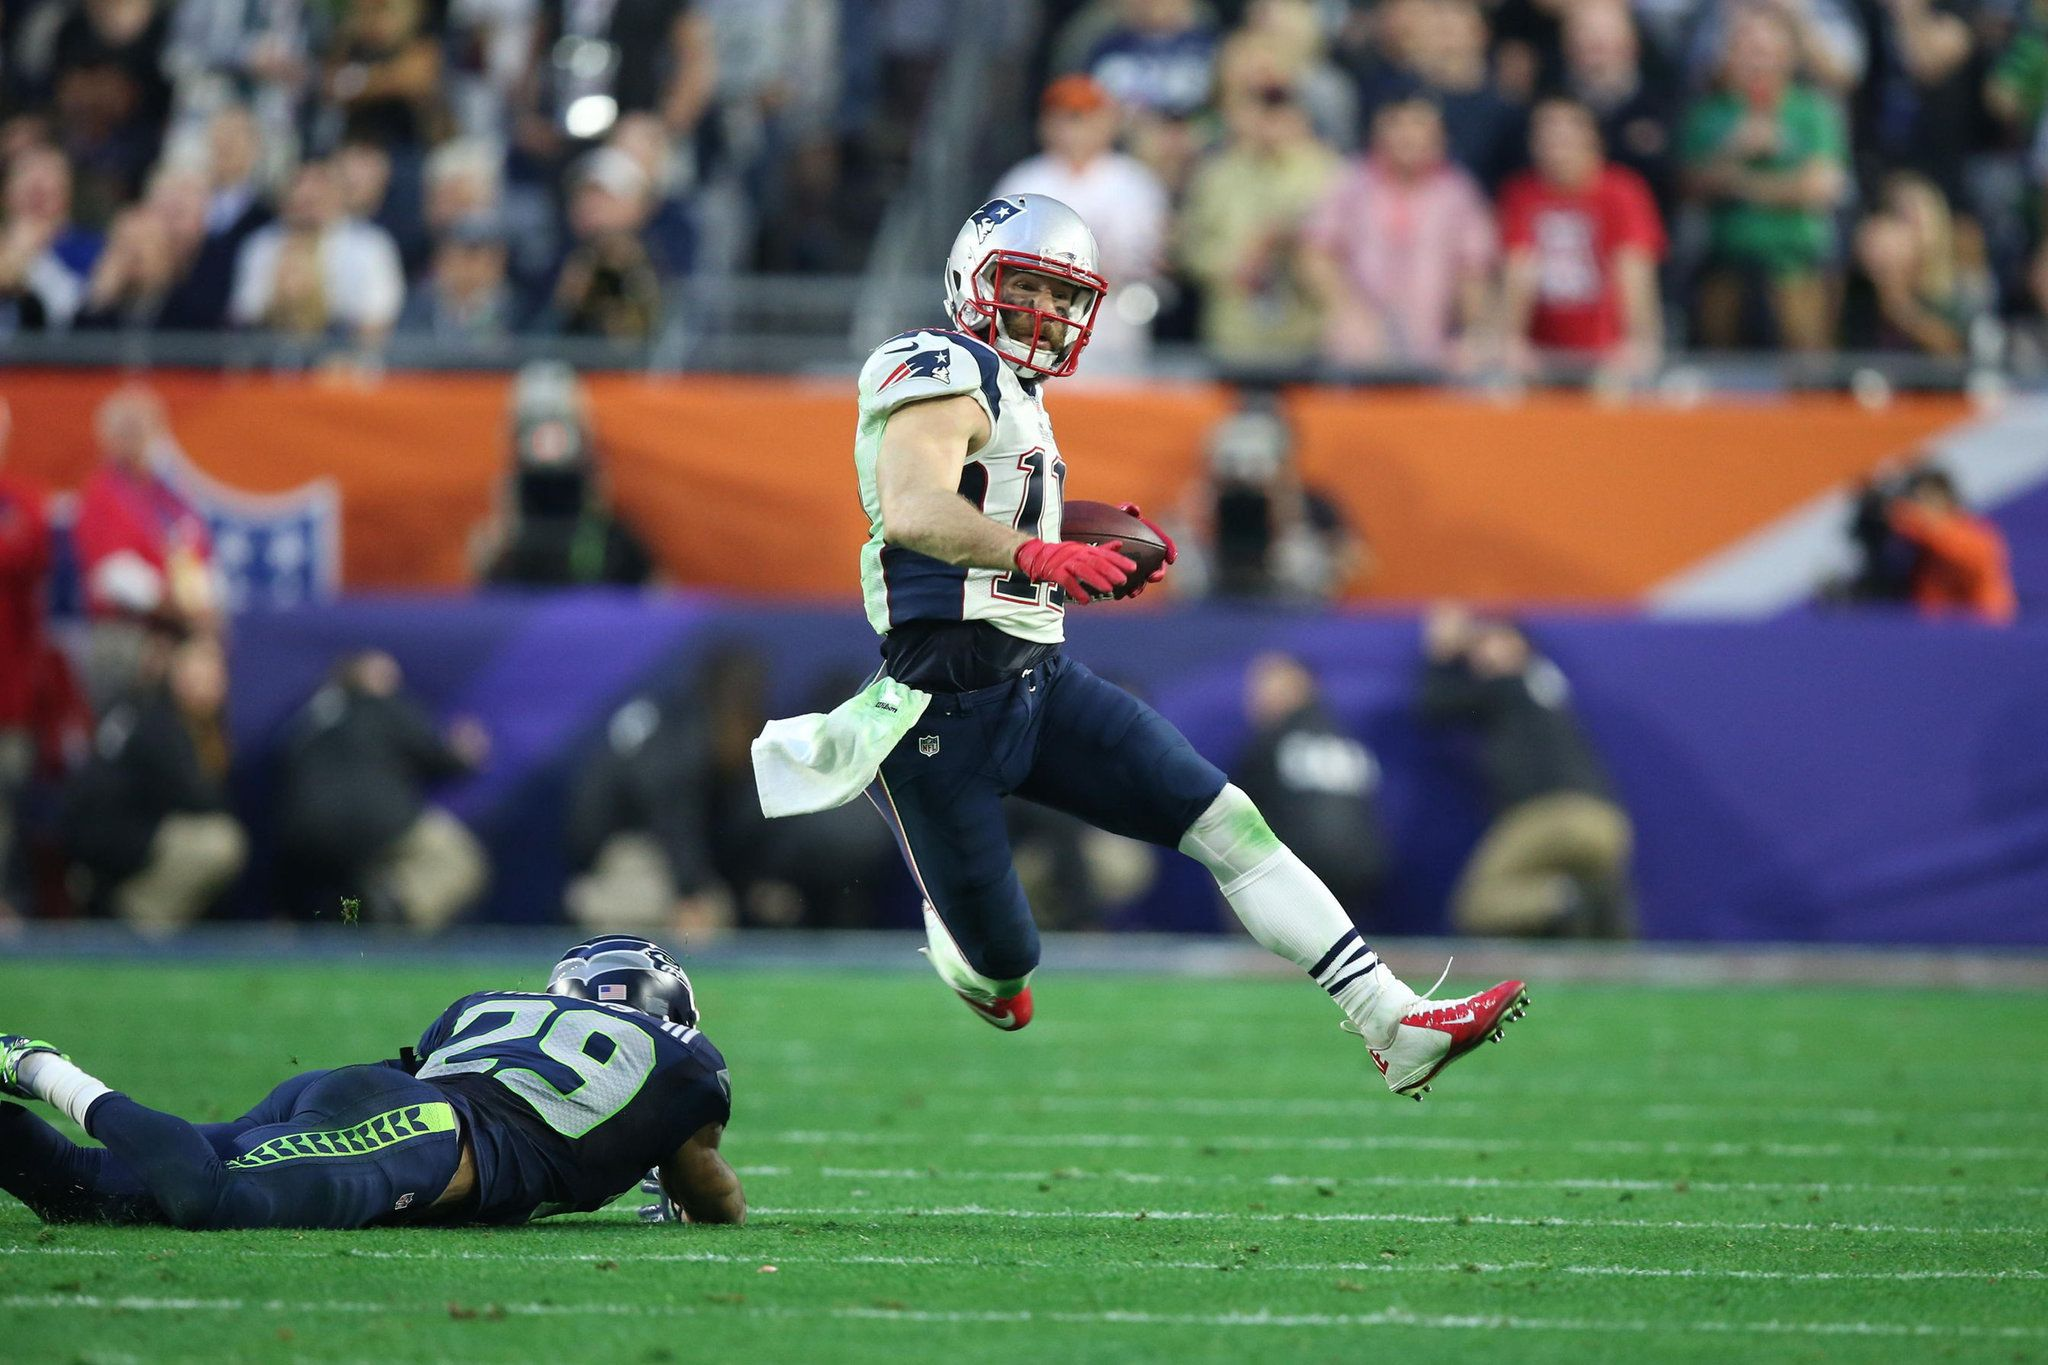 One Yard From Crushing Loss Patriots Grab Their 4th Title Super Bowl Julian Edelman Patriots